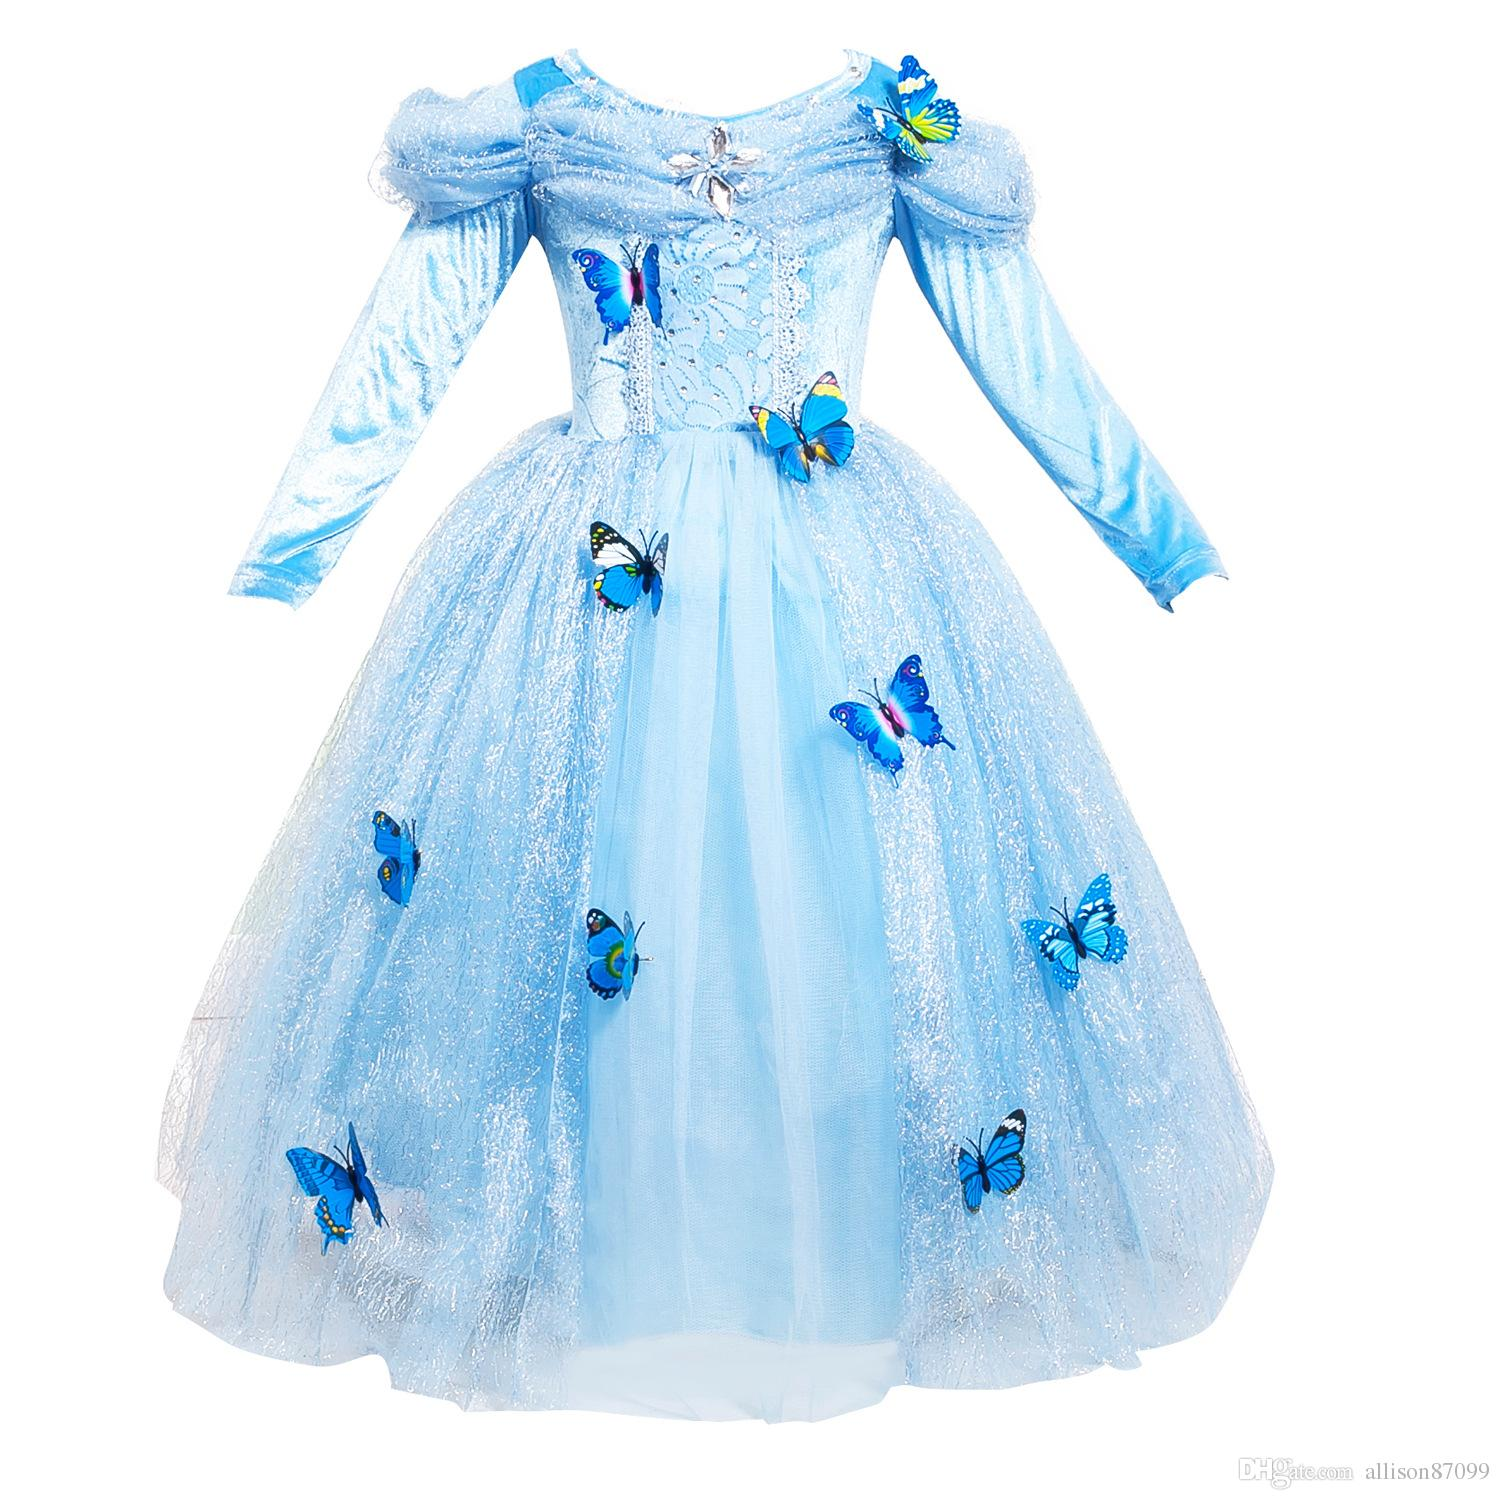 Divine Discount Students Gift Girls Dress Cosplay Princess Dresses Longsleeve Butterfly Party Birthday Gifts Puff Sleeve Blue 2017 Winter Fromchina Discount Students Gift Girls Dress Cosplay Princess gifts Gift For Girls